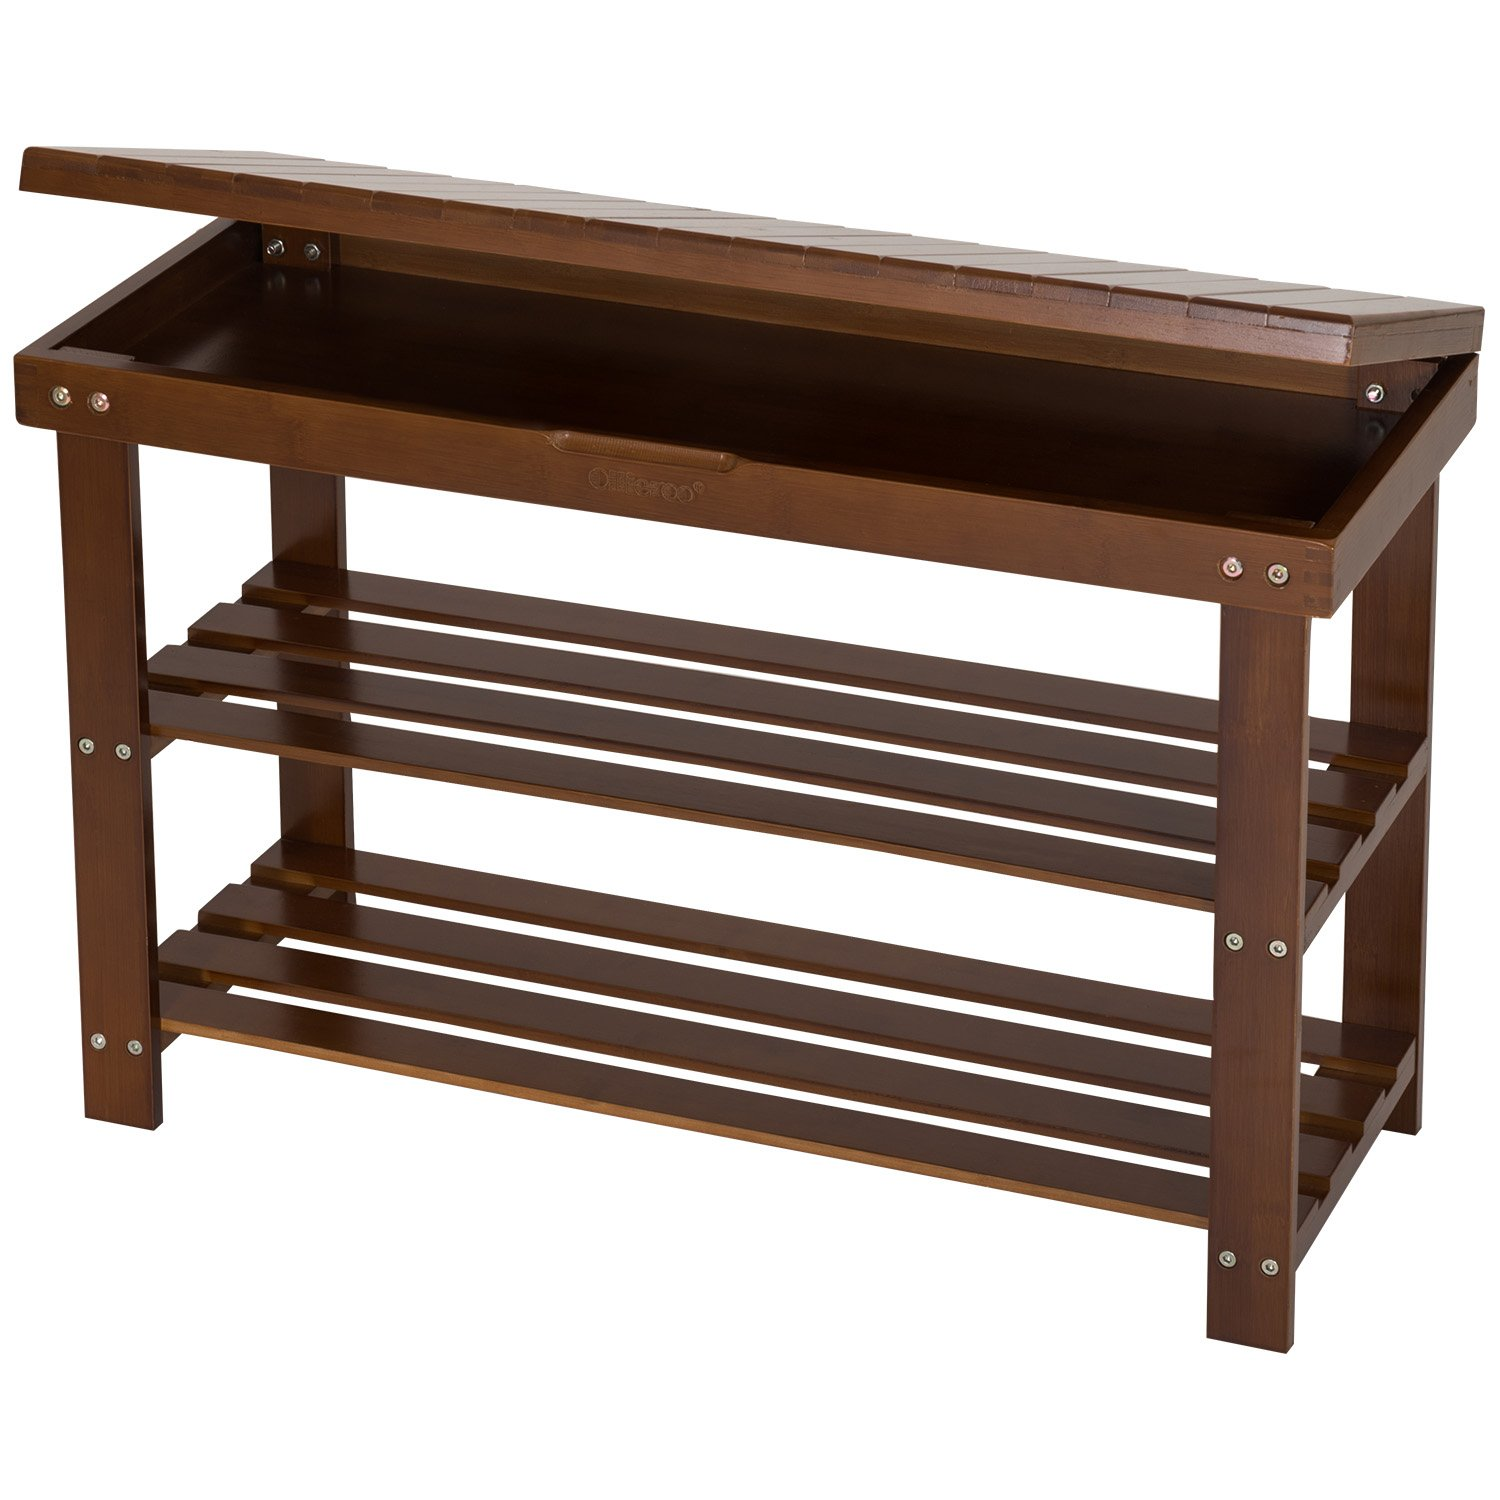 Winsome Monza Bench with Storage Chest in Espresso and Walnut